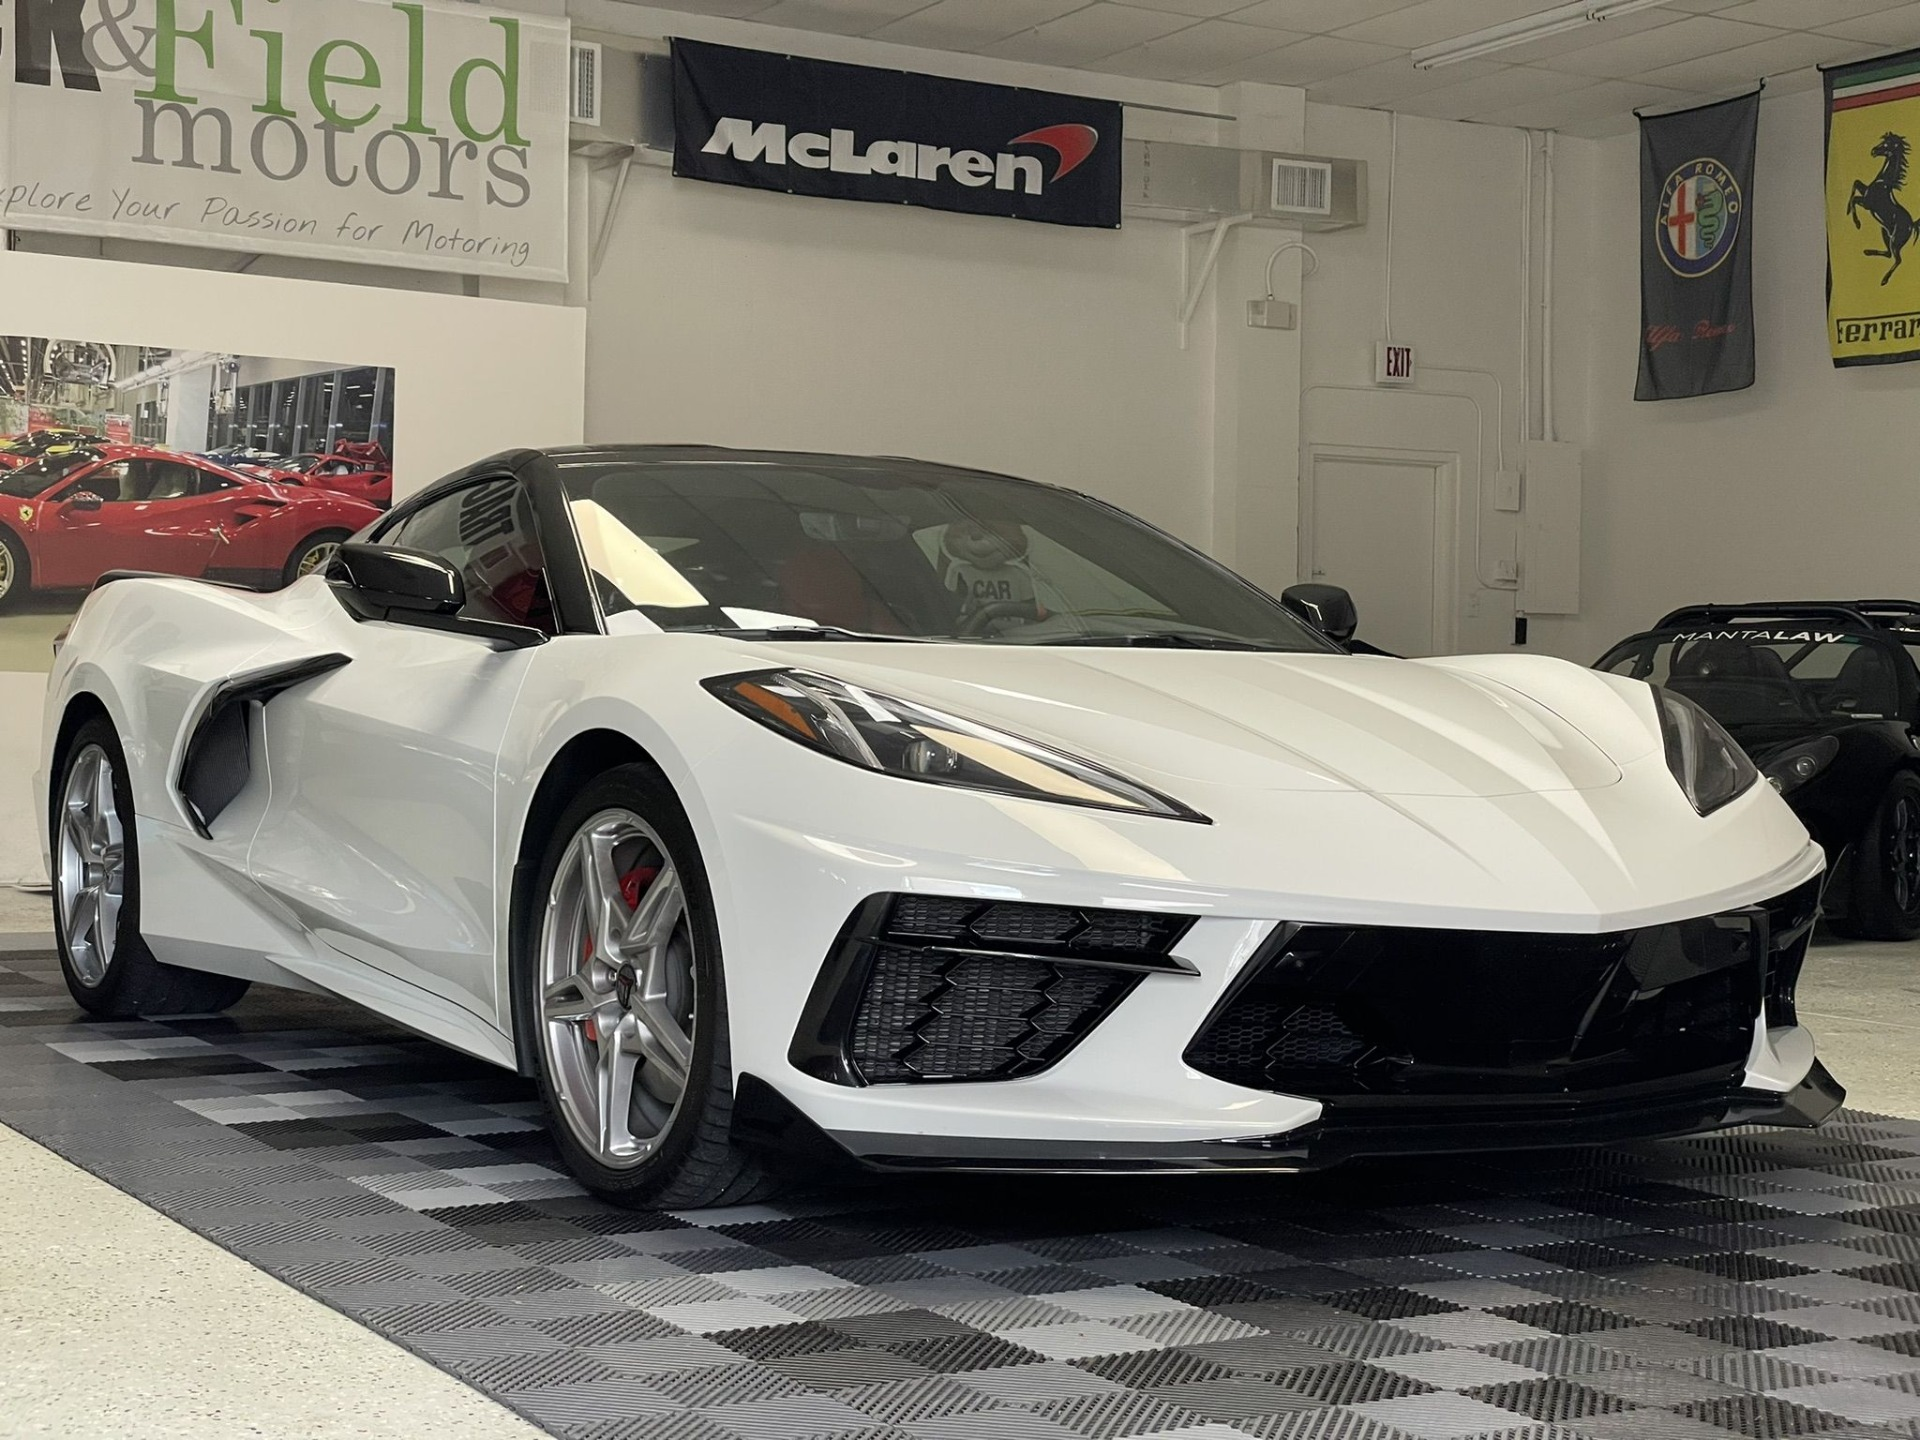 Used 2020 Chevrolet Corvette Stingray Coupe 2D for sale Sold at Track & Field Motors in Safety Harbor FL 34695 1